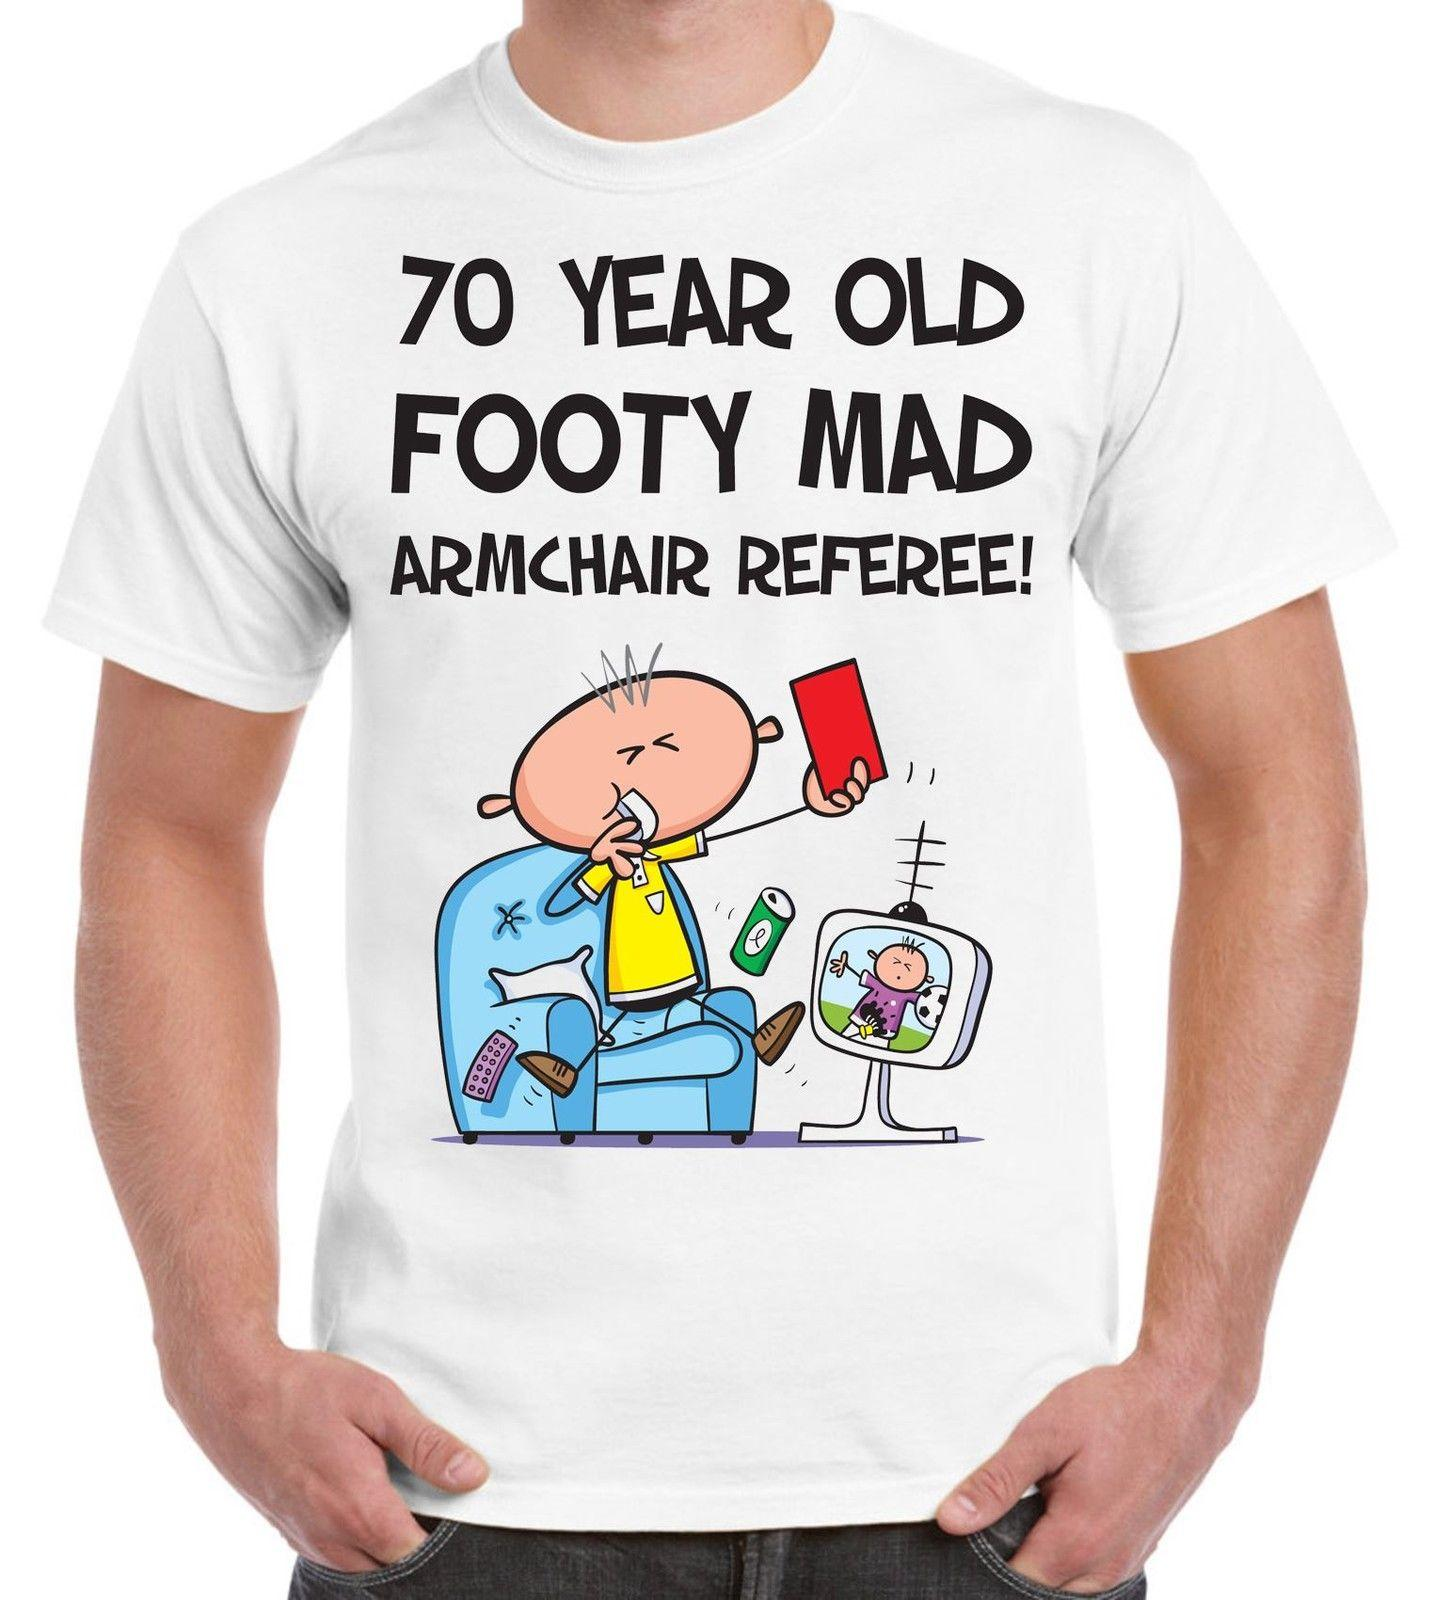 Footy Mad Armchair Referee MenS 70th Birthday Present T Shirt Gift Football Tourist Fun Tee From Tomseng 1101